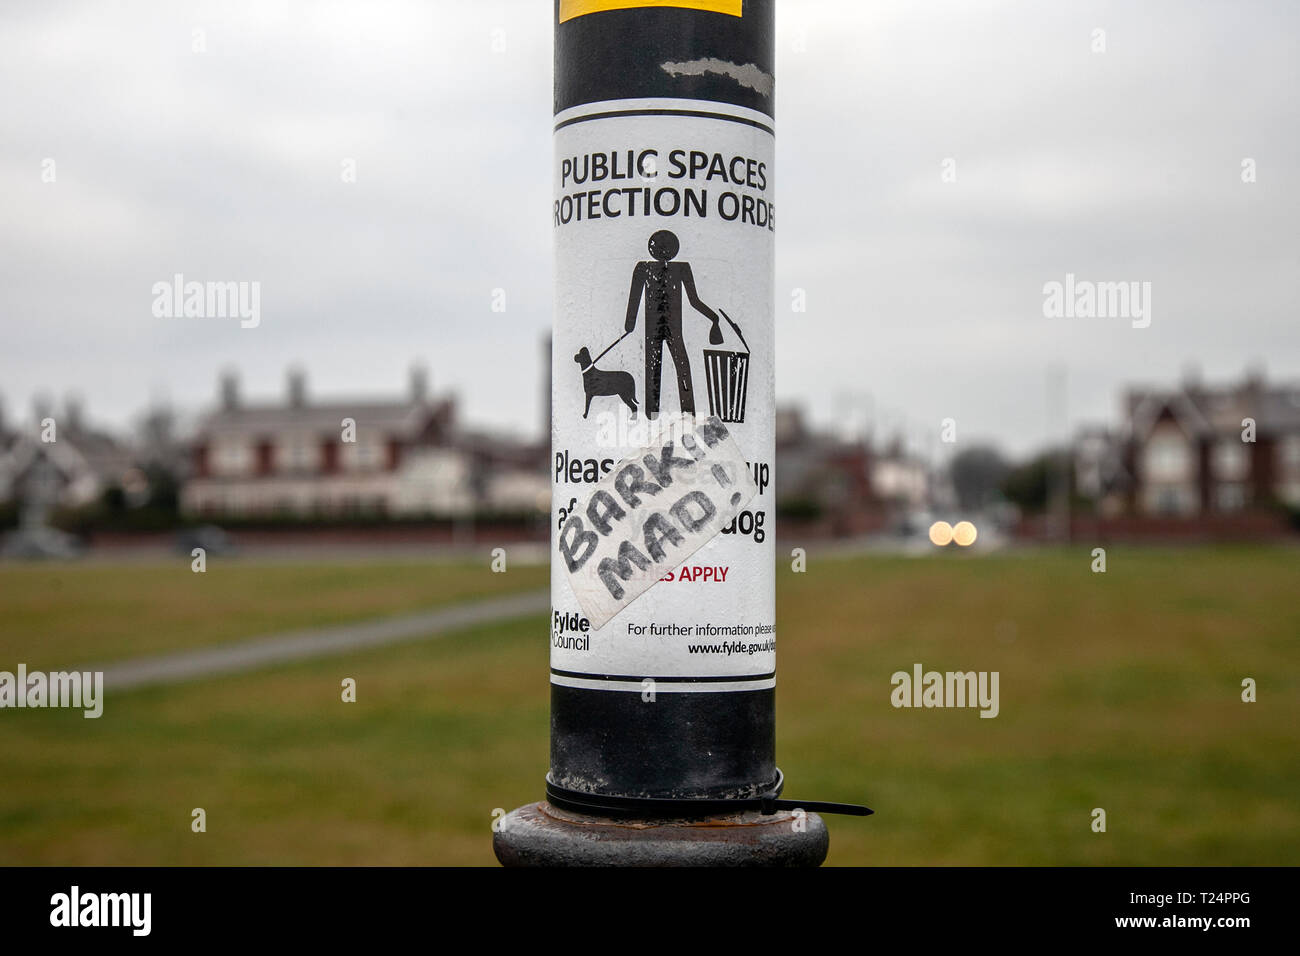 Defaced Fylde Council Public Space Protection Order notice, Blackpool, UK - Stock Image